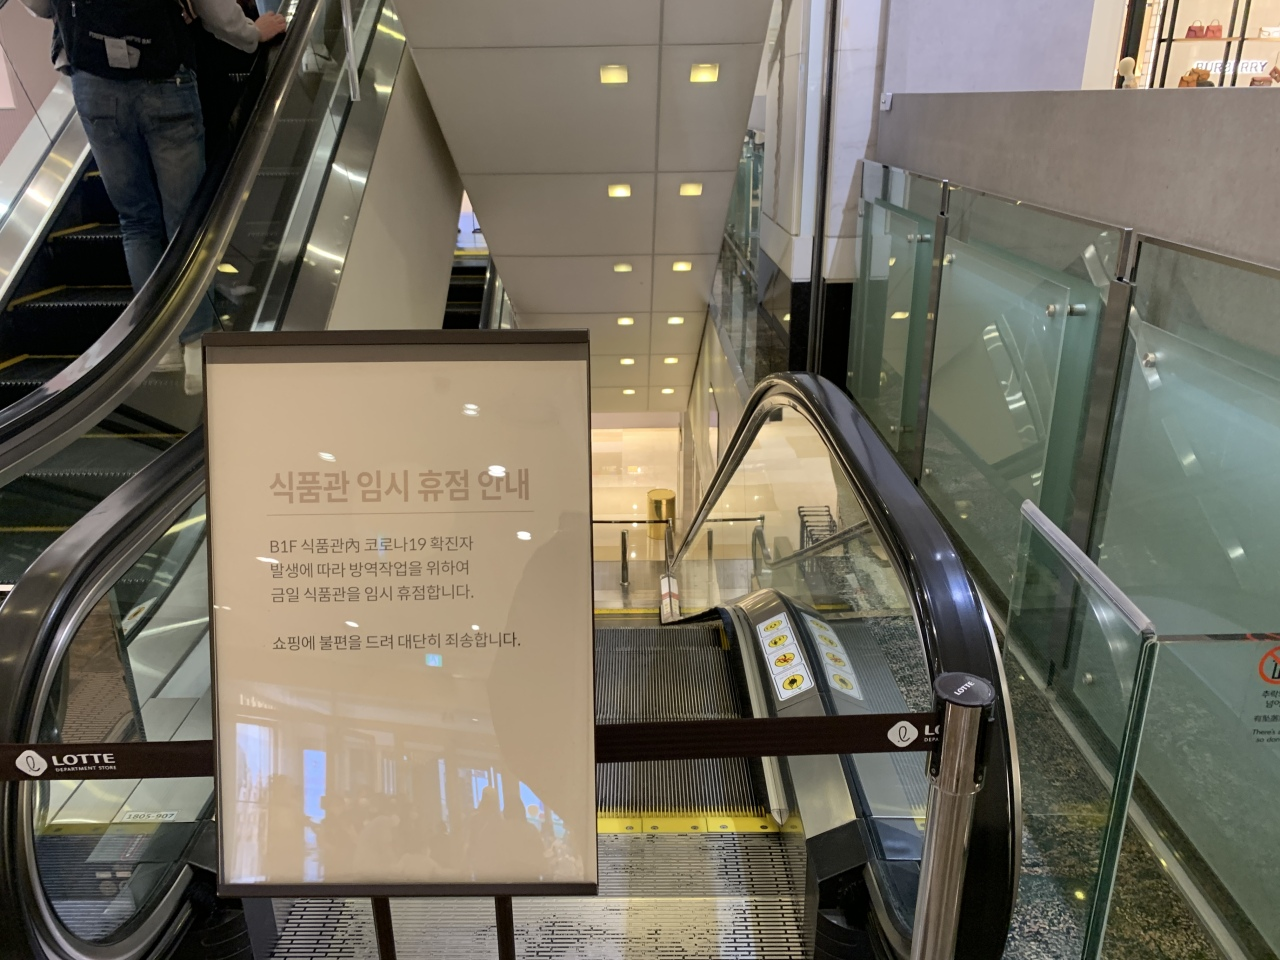 A notice for the temporary closure of a department's supermarket in downtown Seoul due to COVID-19 informs people next to an escalator leading to the store on Wednesday. (Yonhap)